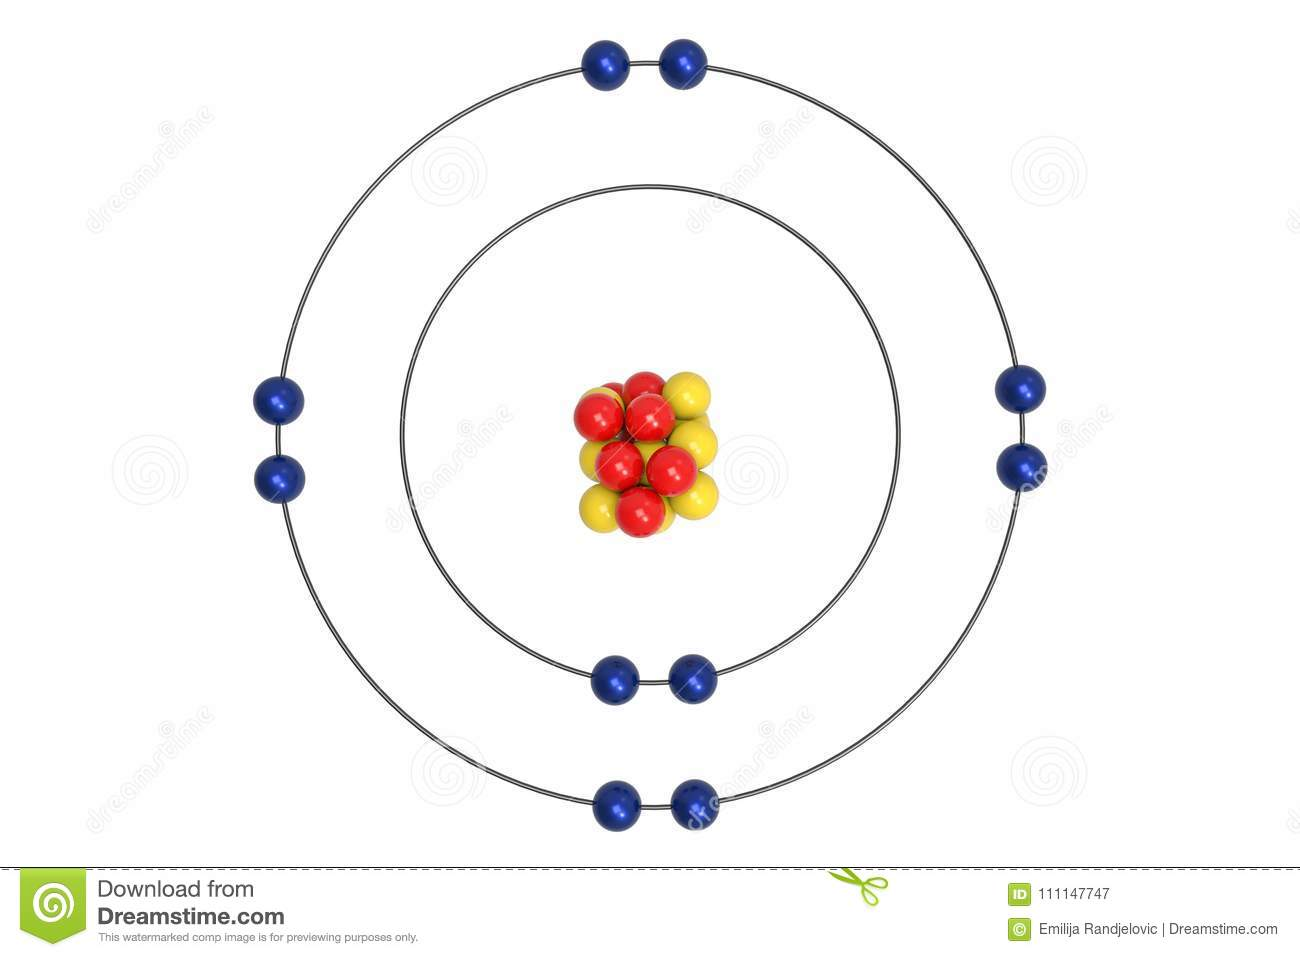 hight resolution of neon atom bohr model with proton neutron and electron